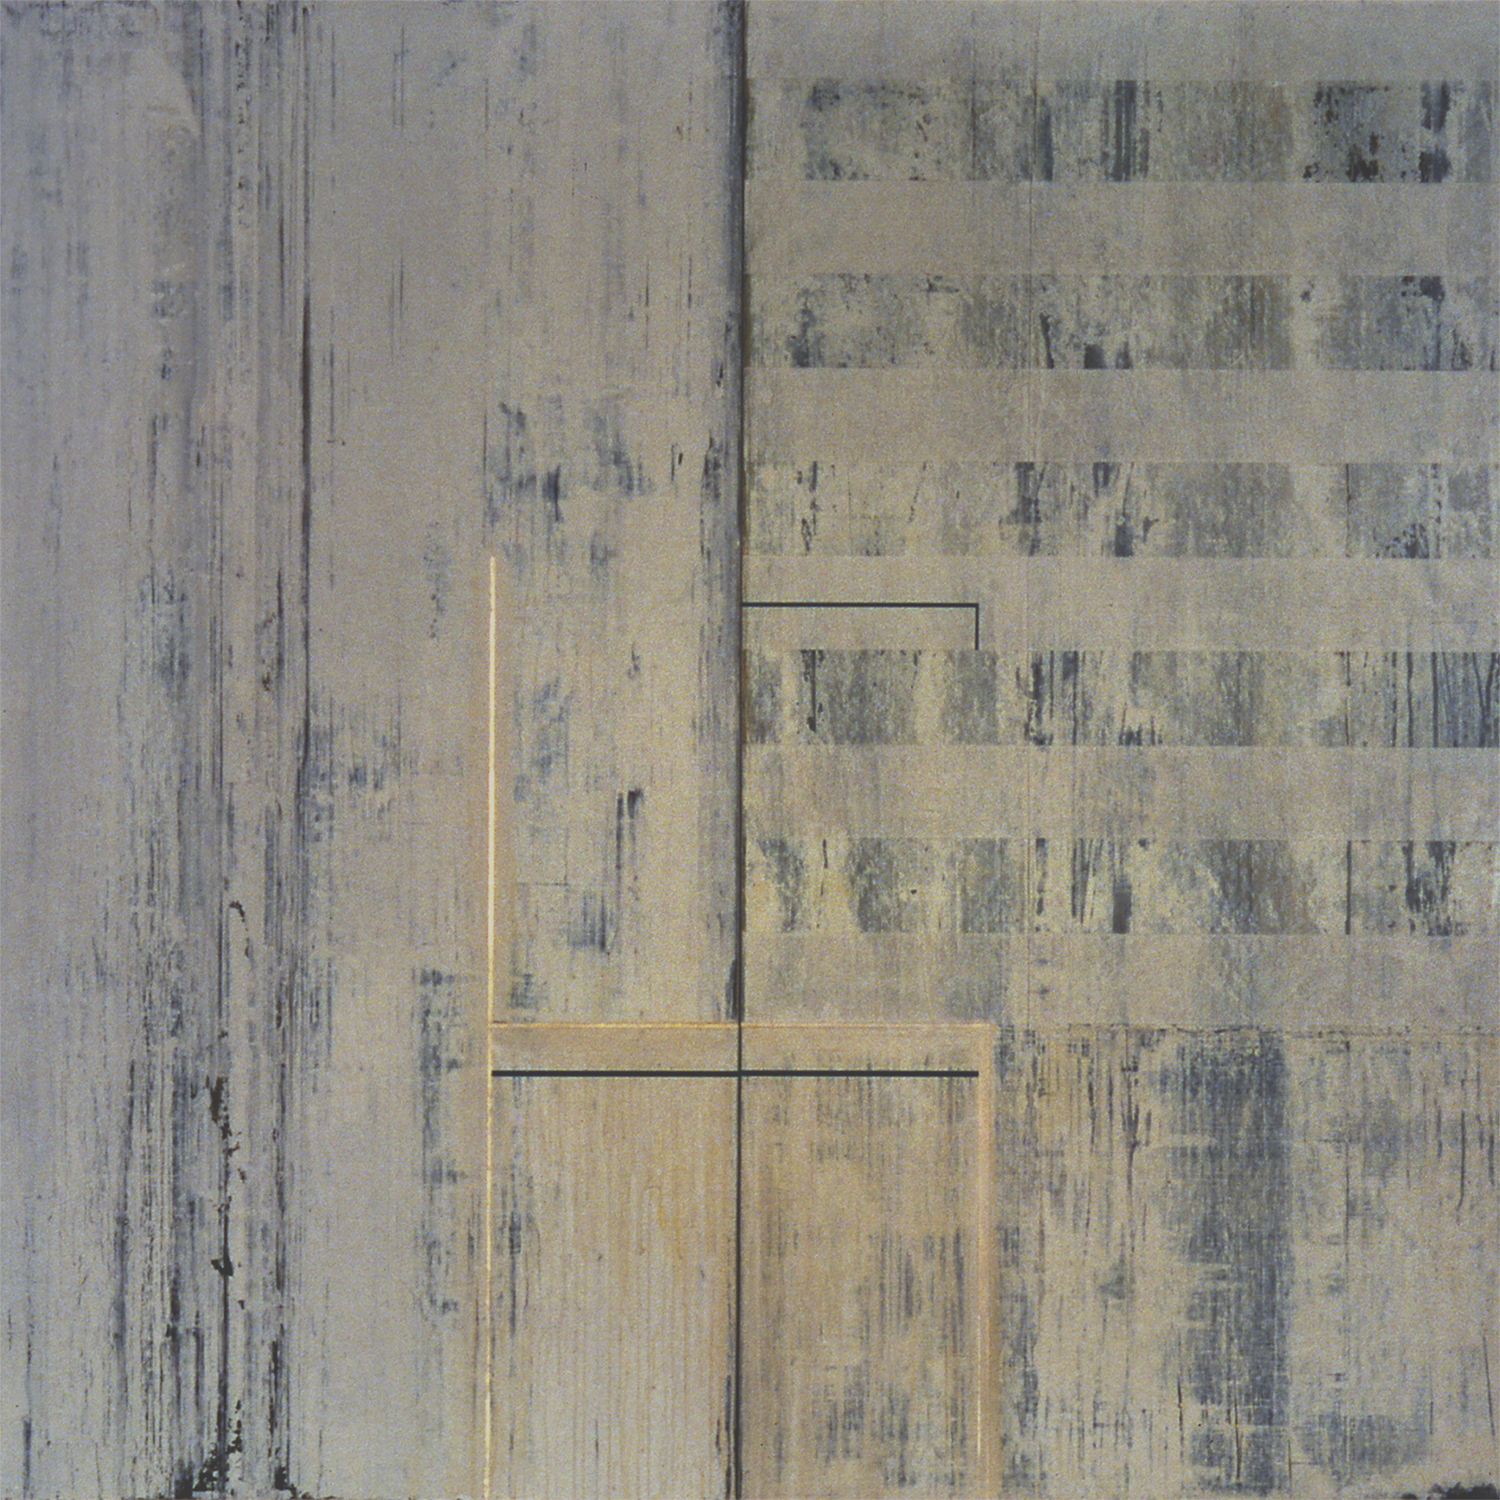 Divided Square 46, 1988, Acrylic on canvas over panels, 72 x 72 inches.